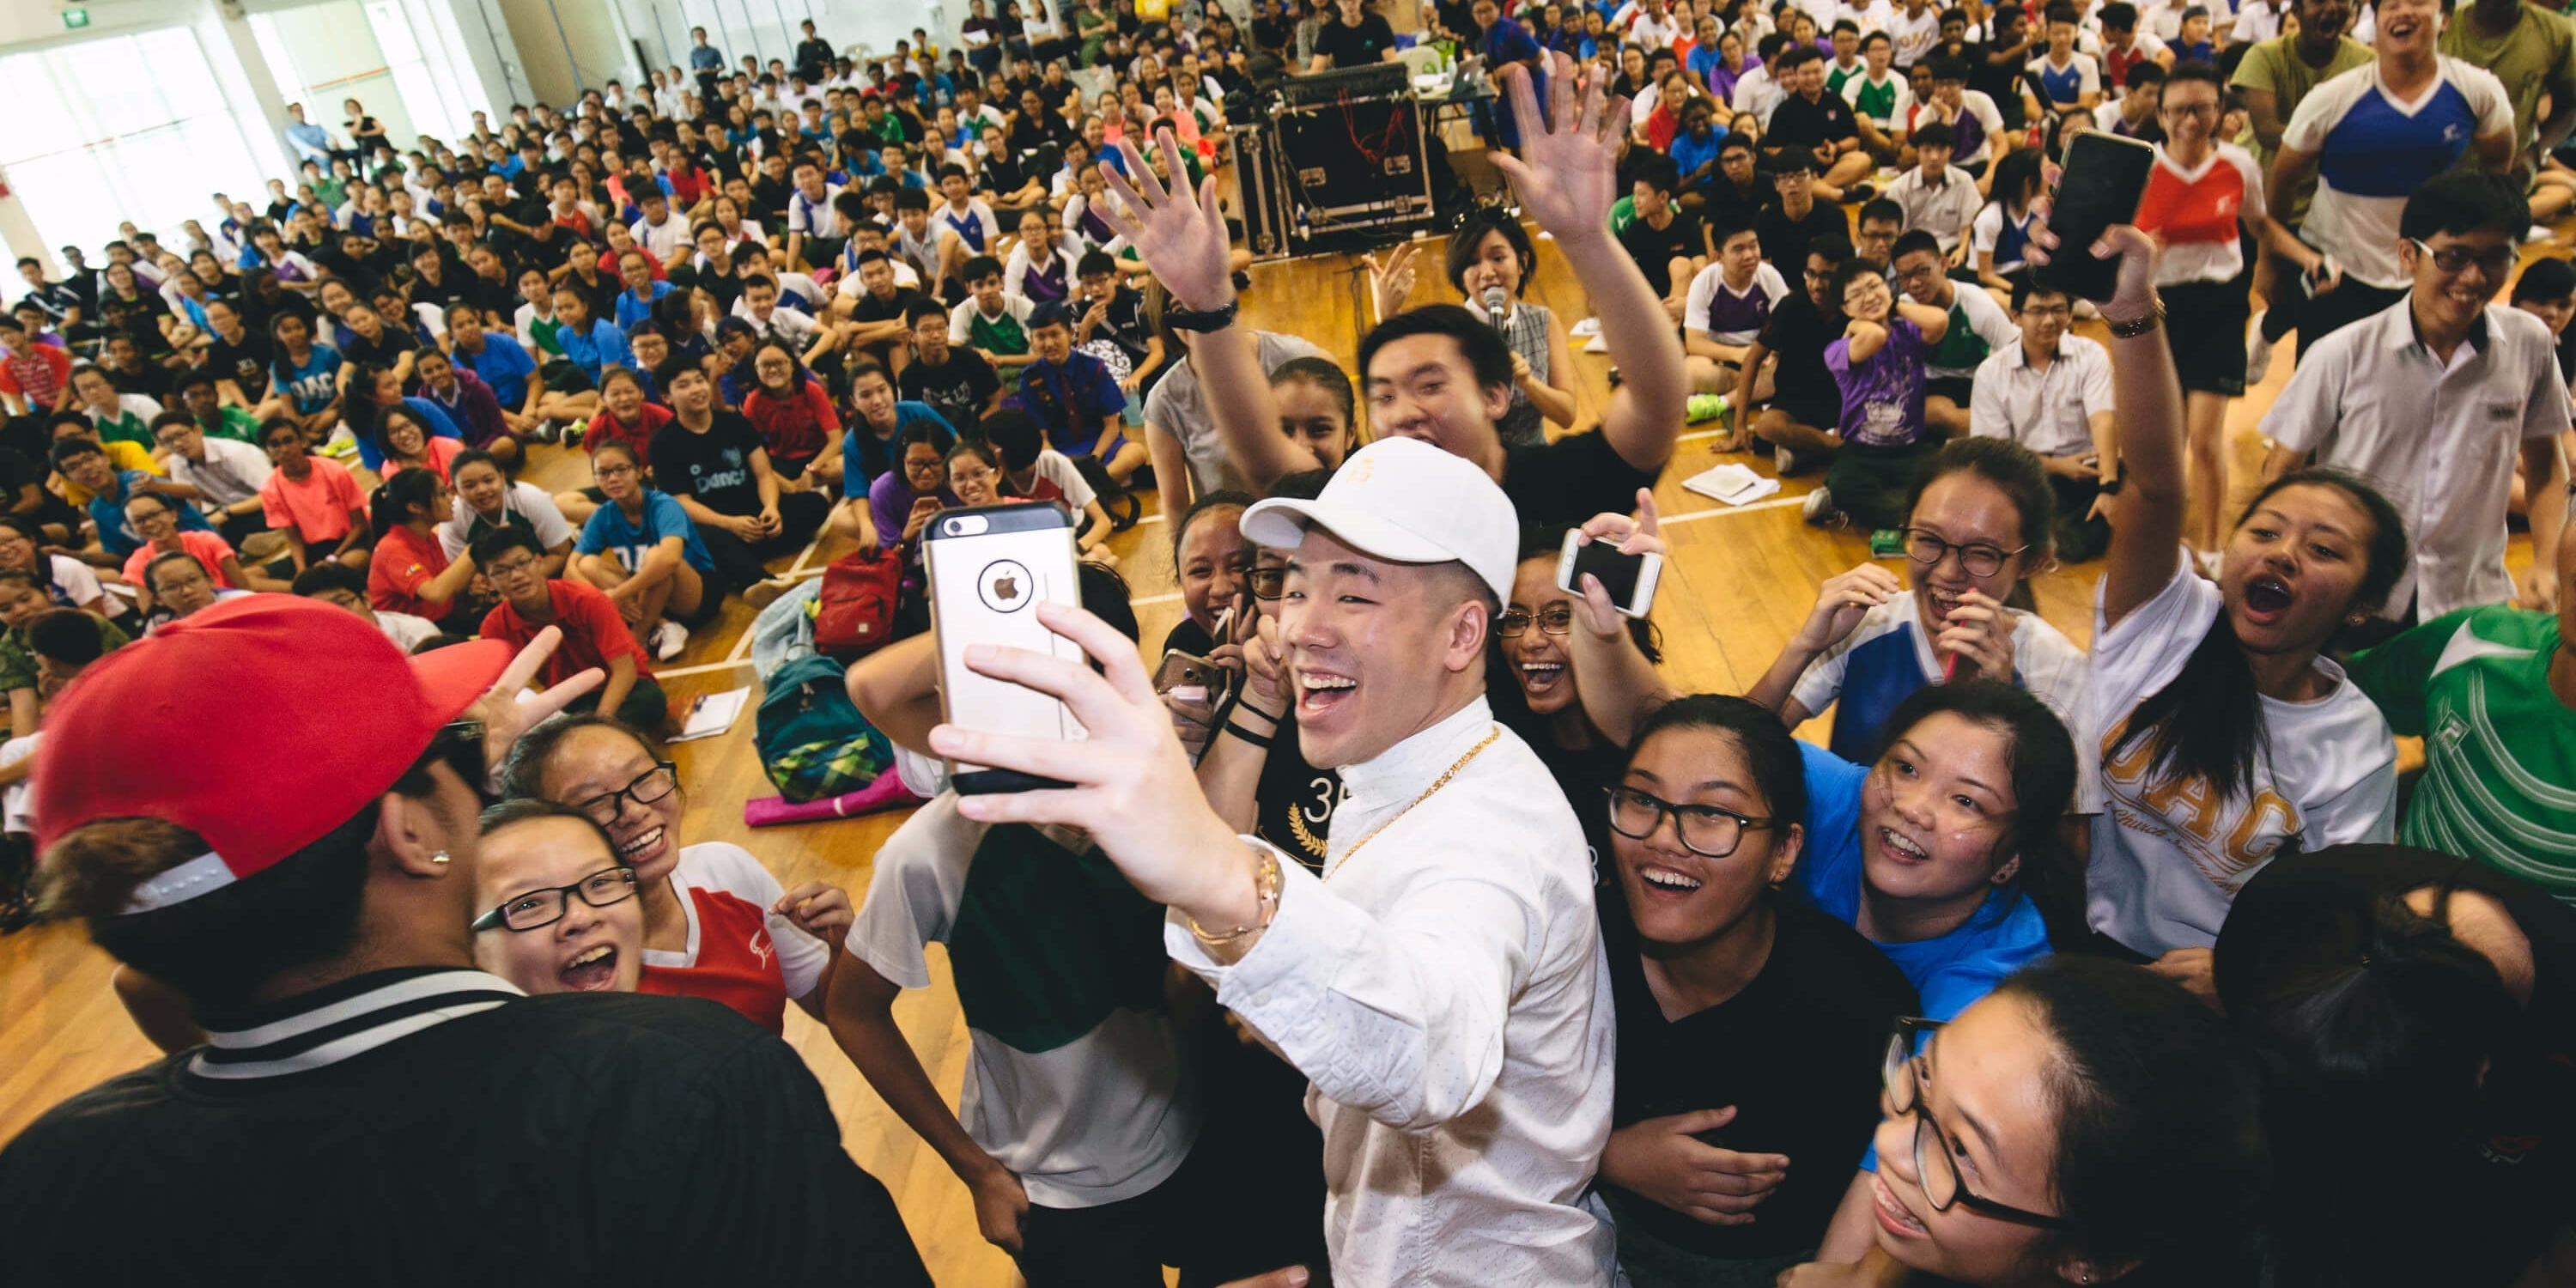 Catching up with Singapore's coolest school program, the *SCAPE Invasion Tour 2016